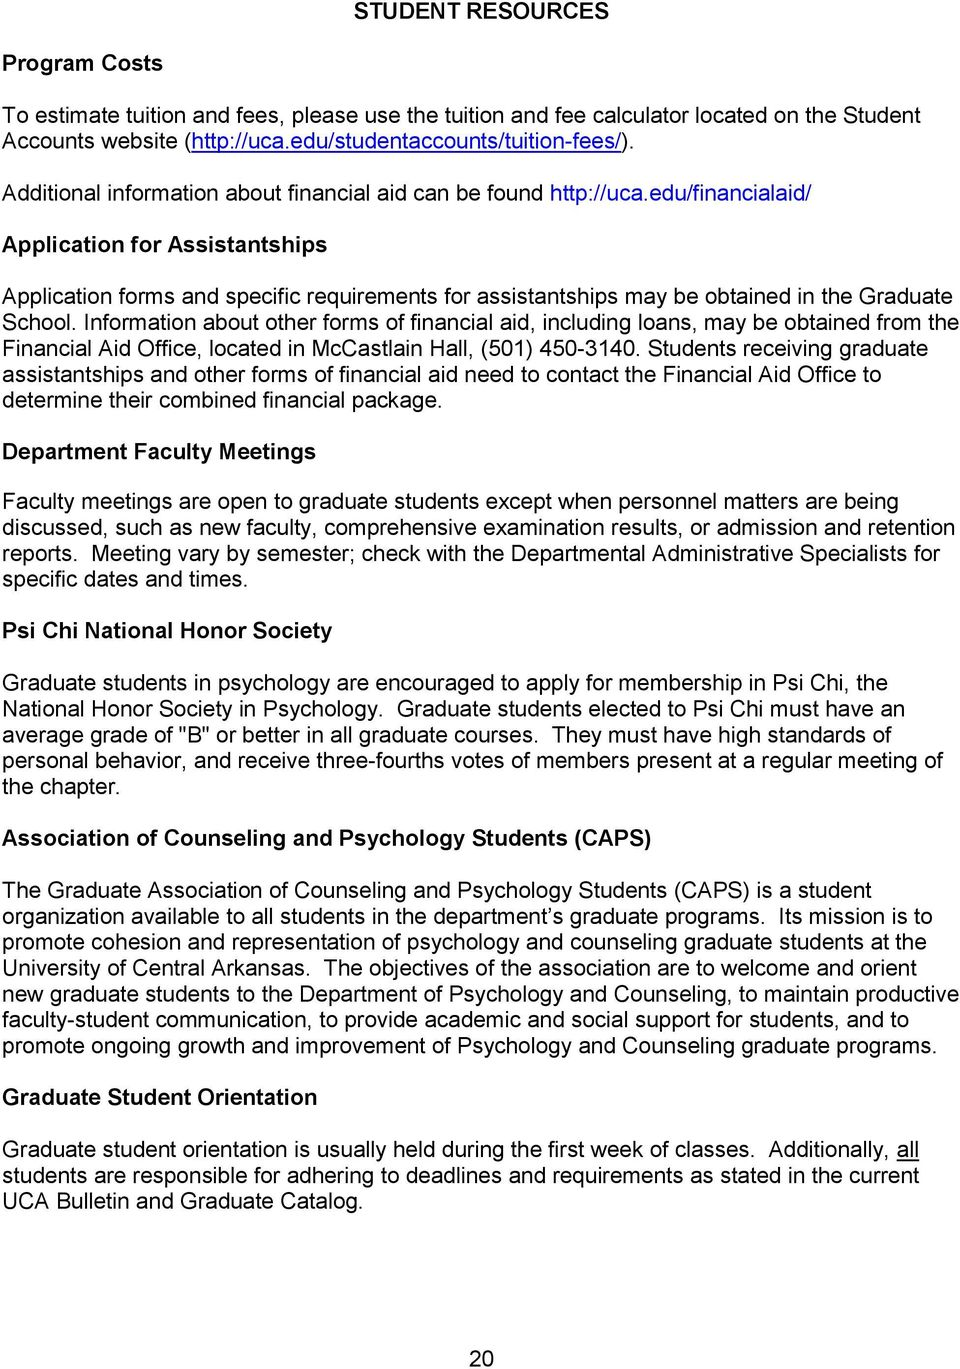 edu/financialaid/ Application for Assistantships Application forms and specific requirements for assistantships may be obtained in the Graduate School.